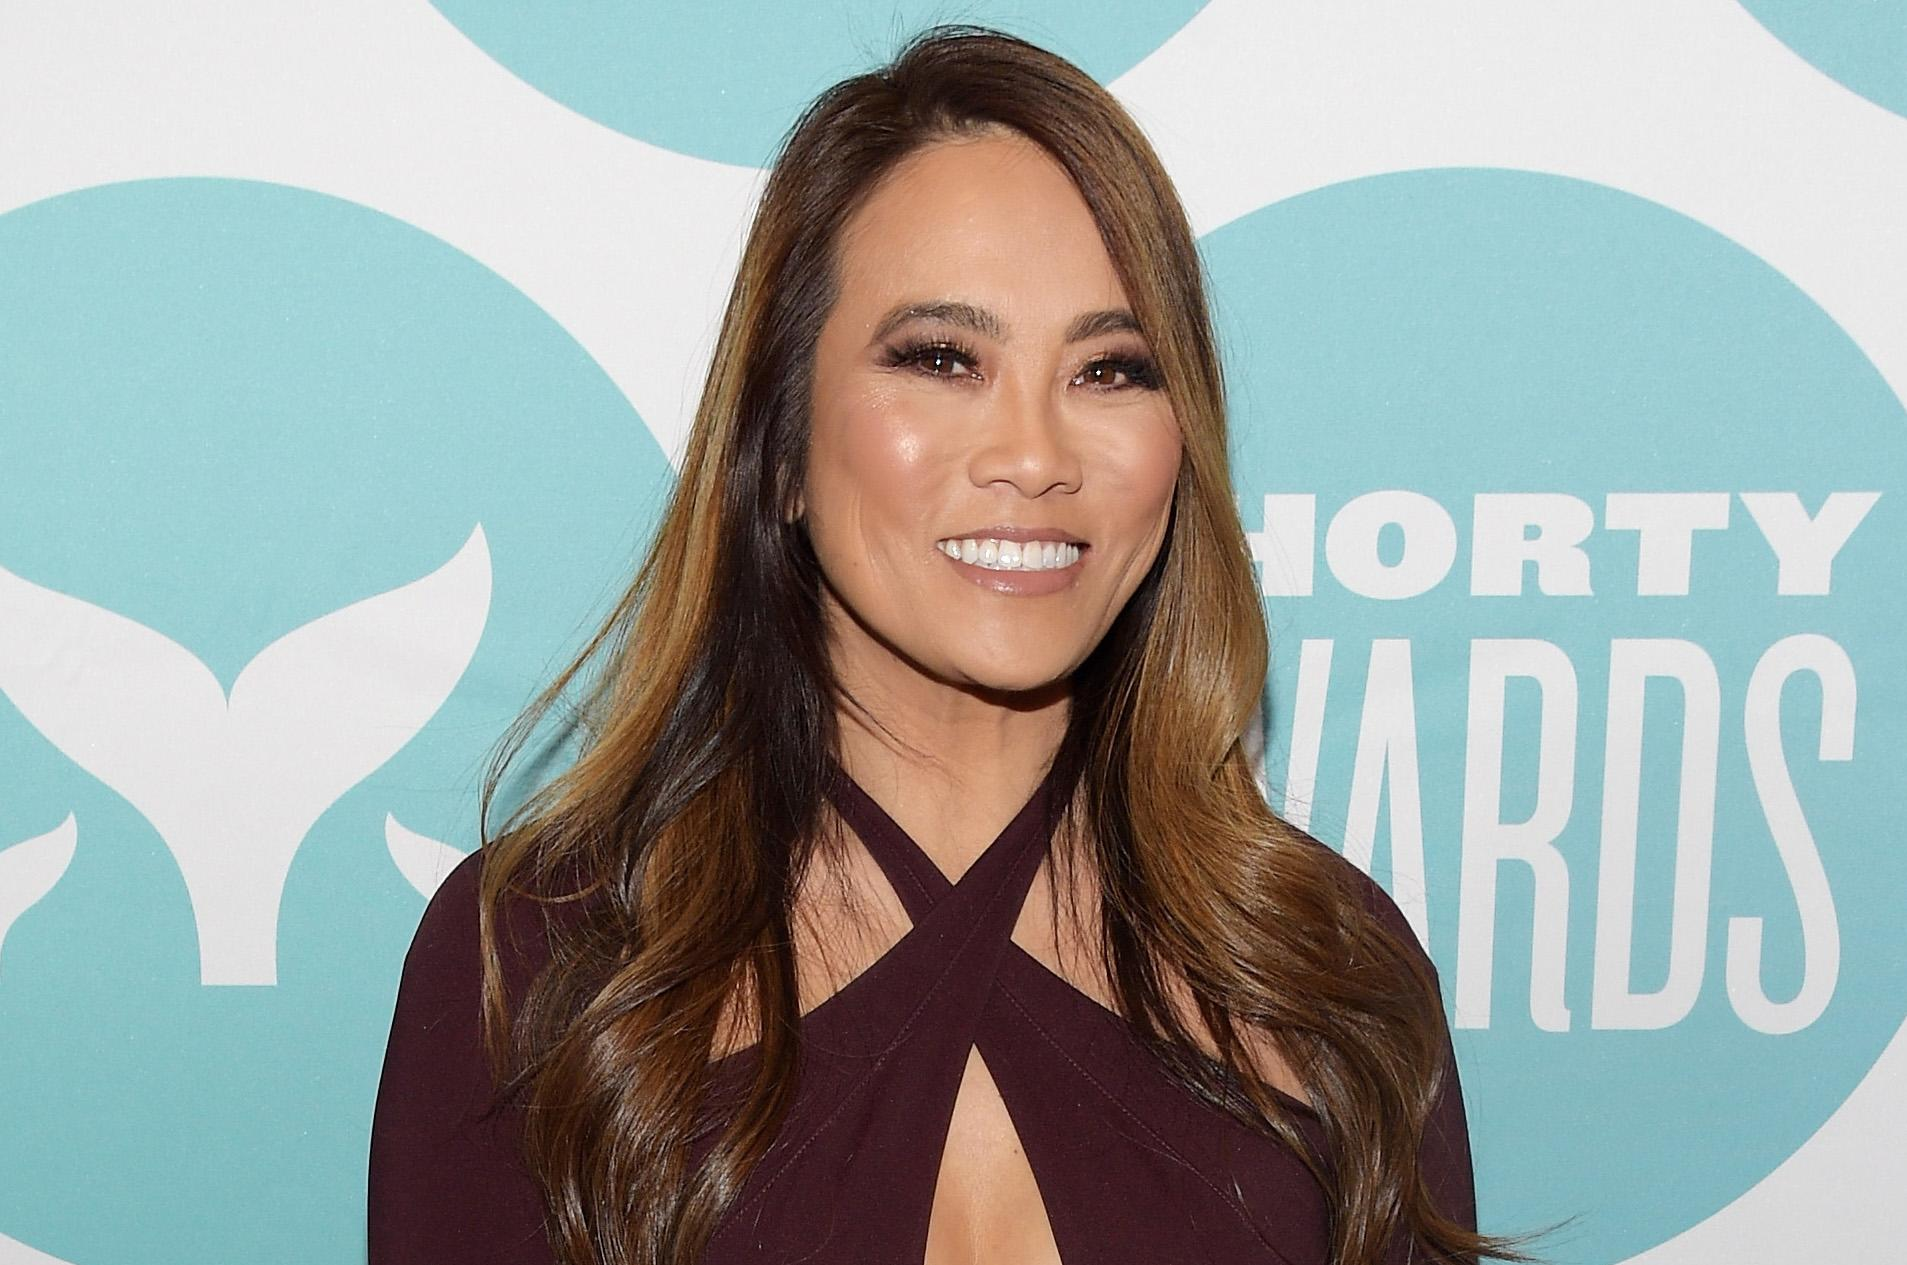 Dr. Pimple Popper swears by this $6 drugstore skincare product